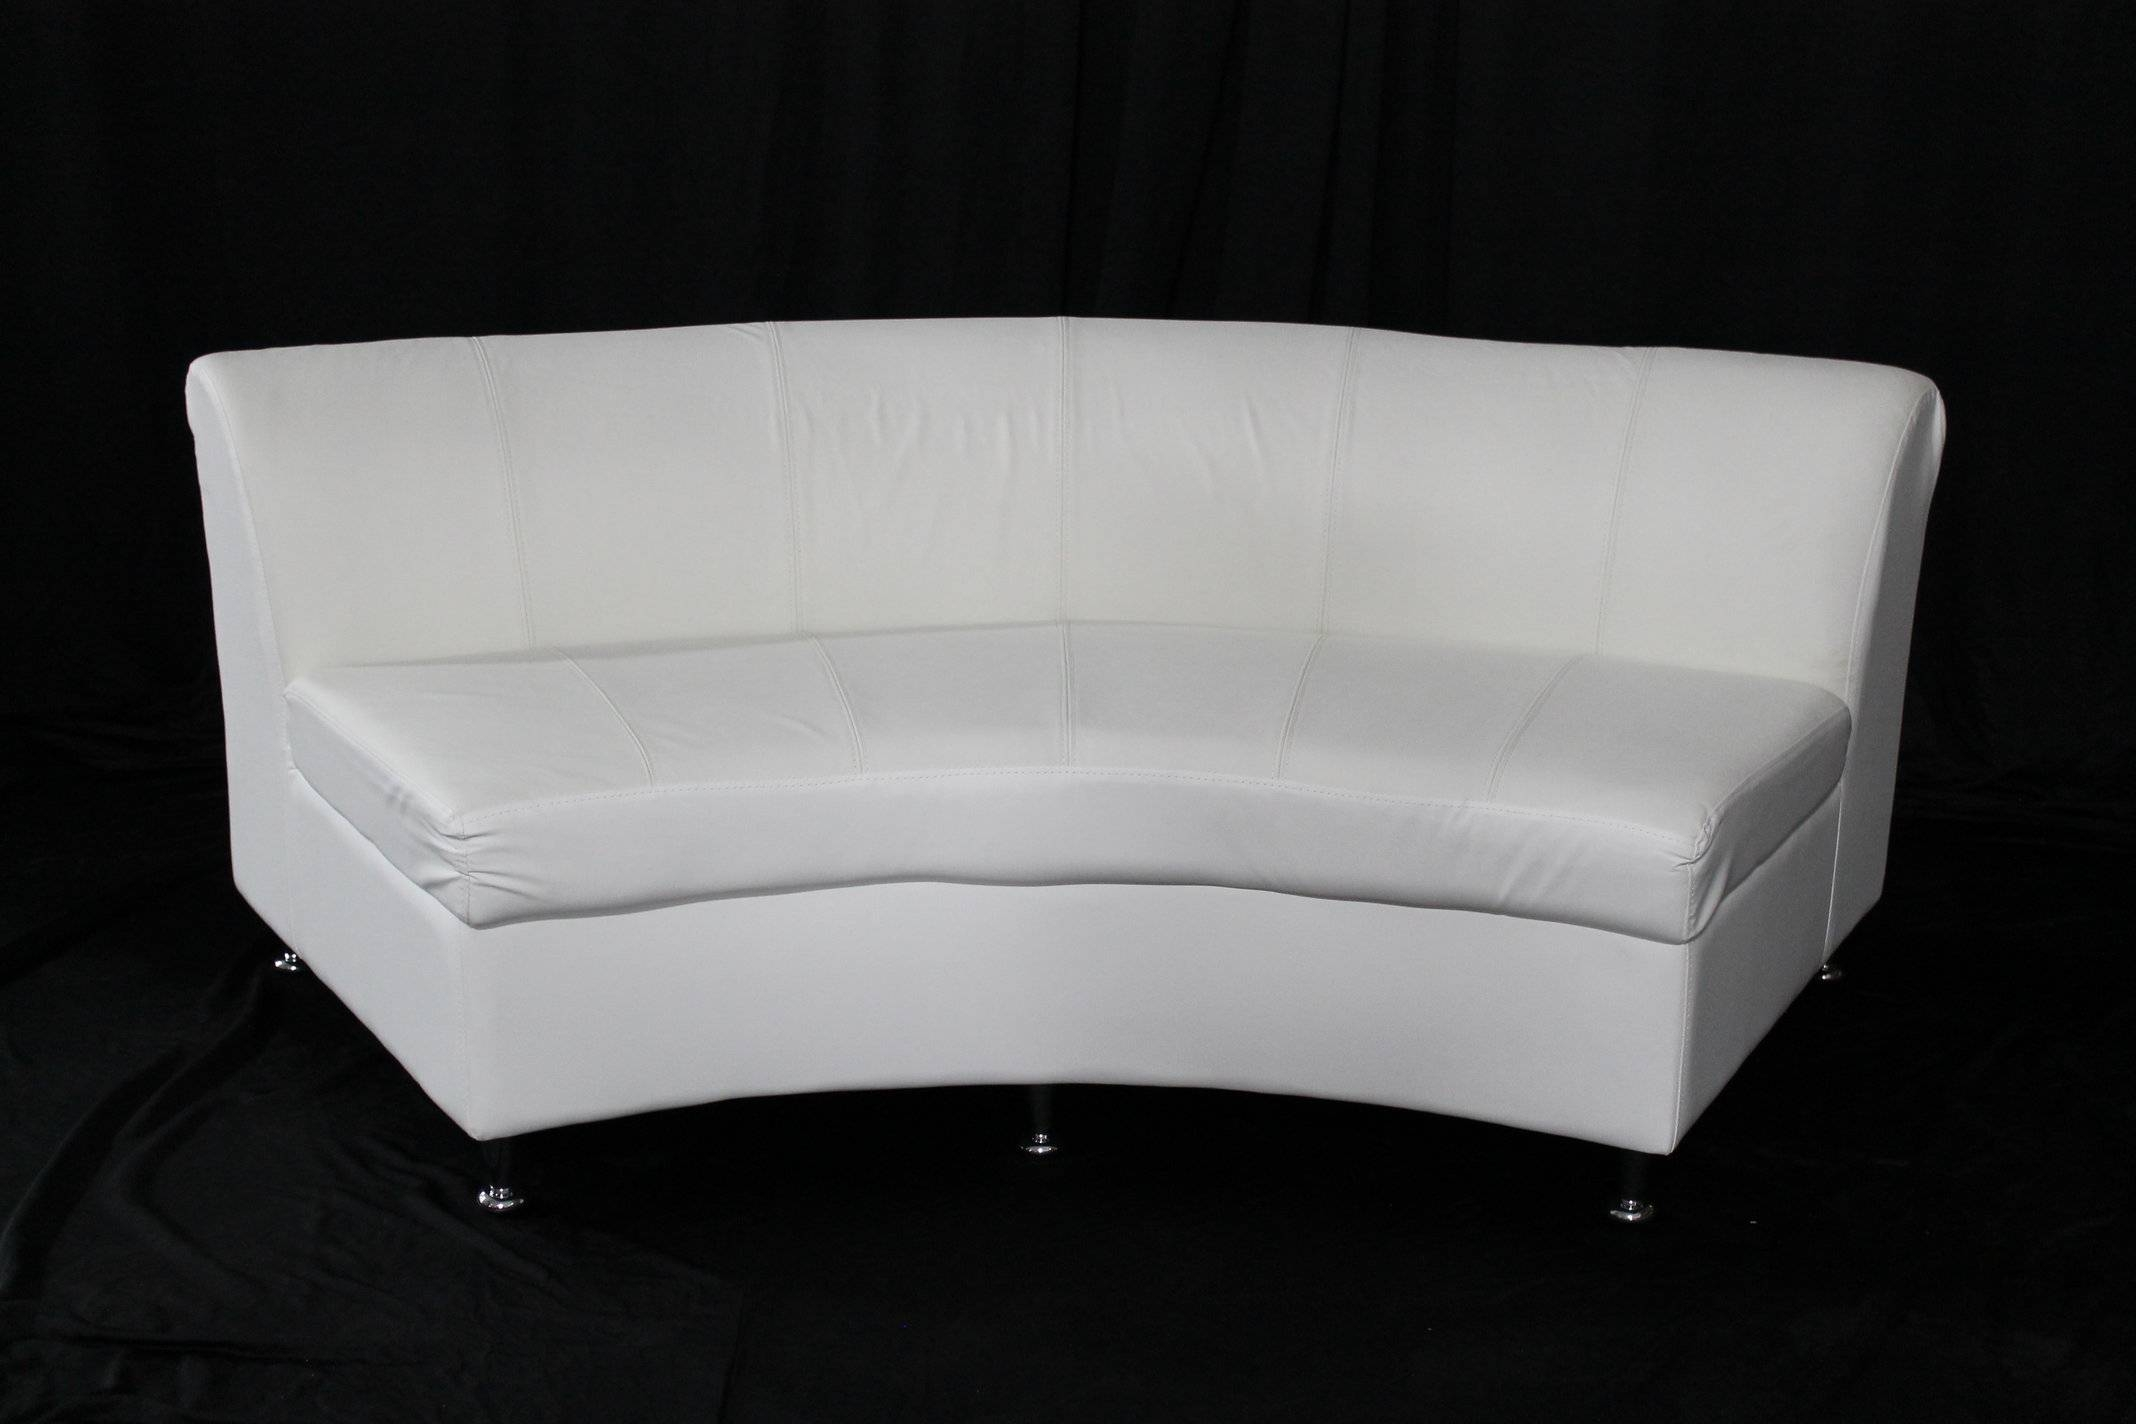 New White Leather Lounge Furniture Adds The Perfect Touch To throughout Leather Lounge Sofas (Image 21 of 30)